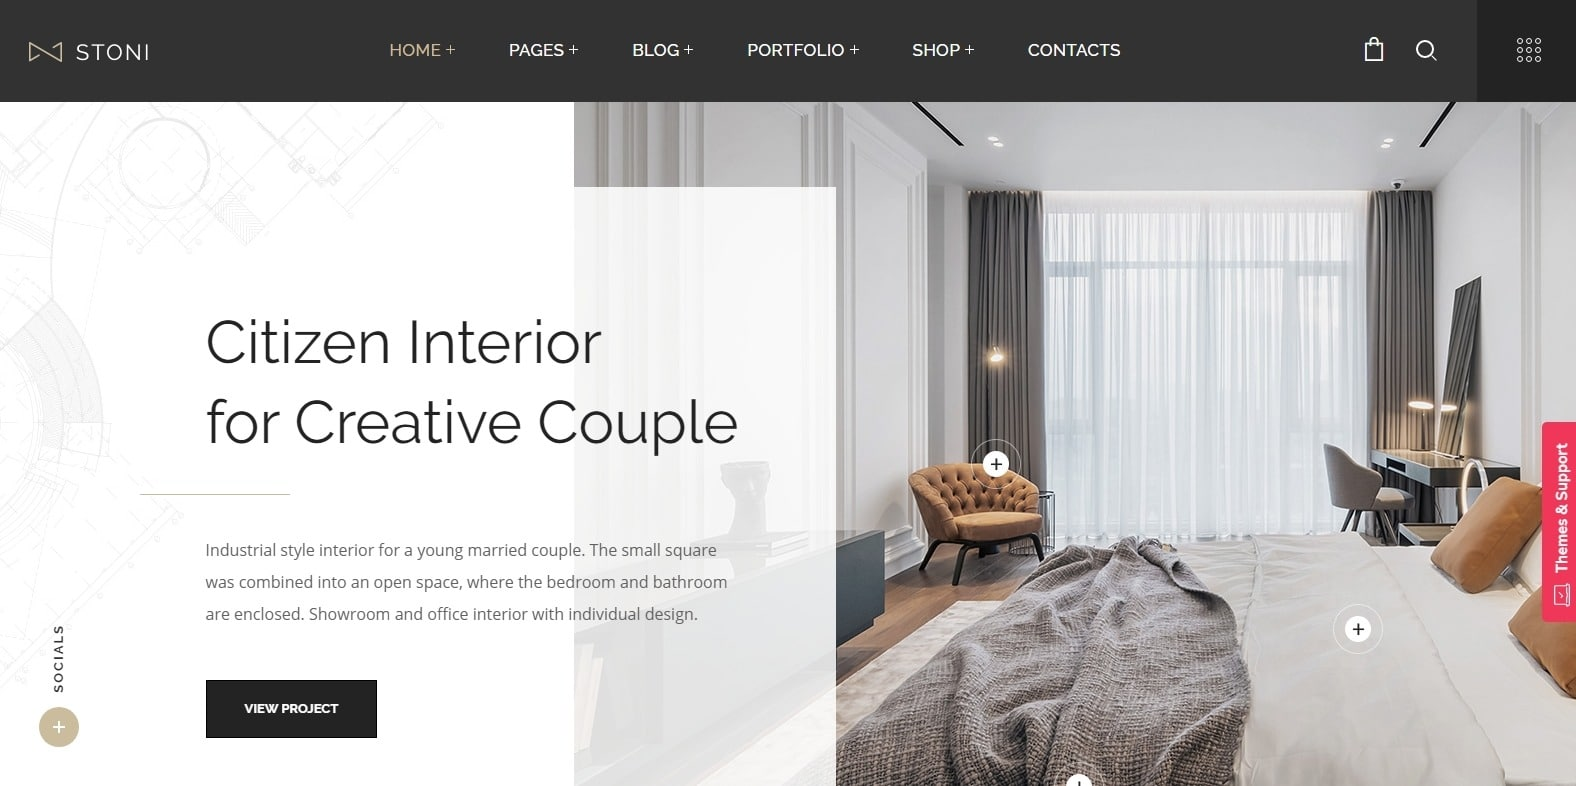 stoni-interior-design-website-template